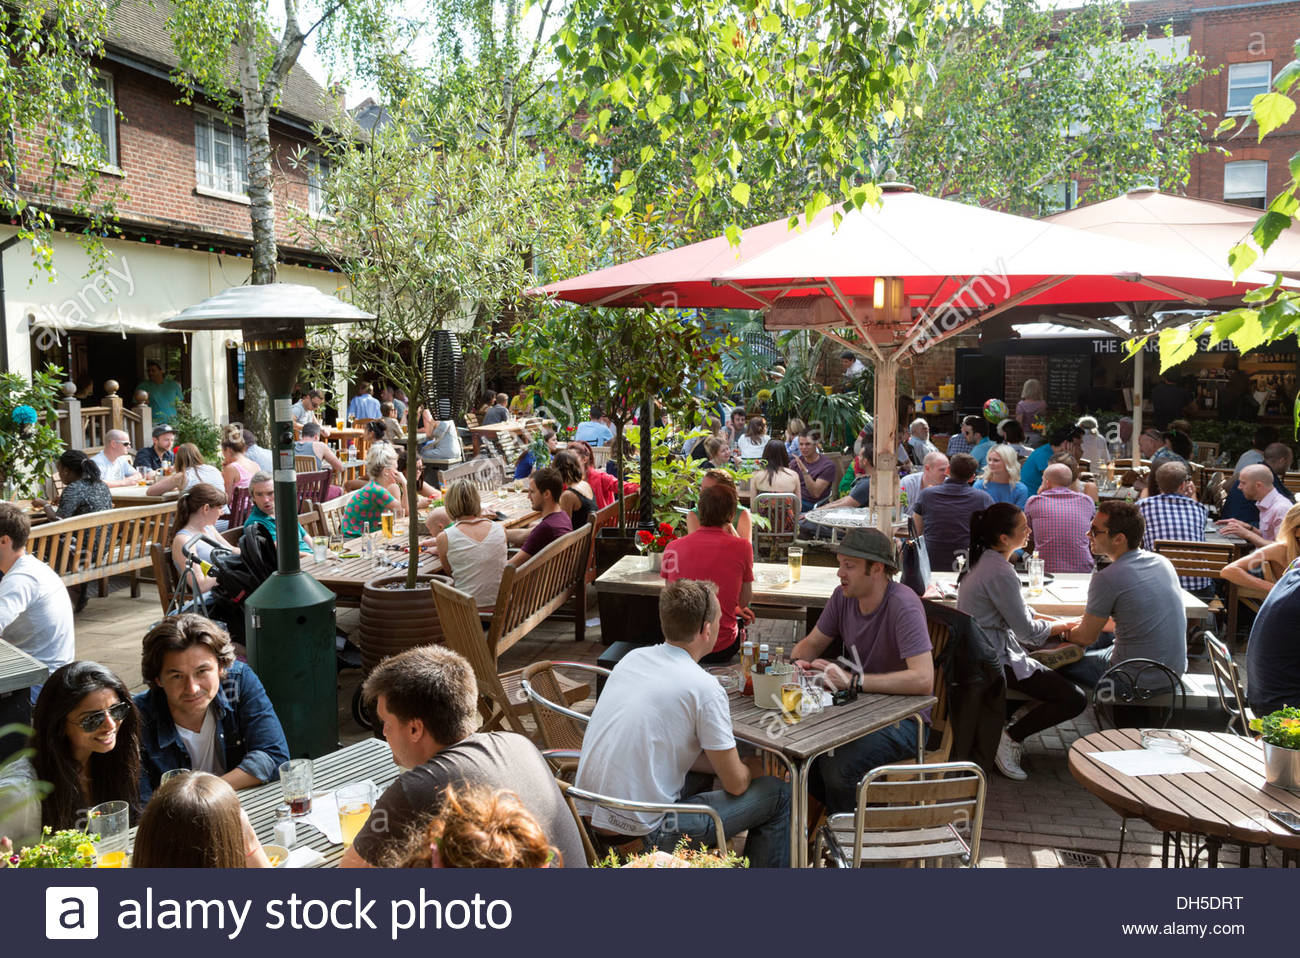 People drinking in the beer garden of The Garden Gate pub, Hampstead, London, England, UK - Stock Image